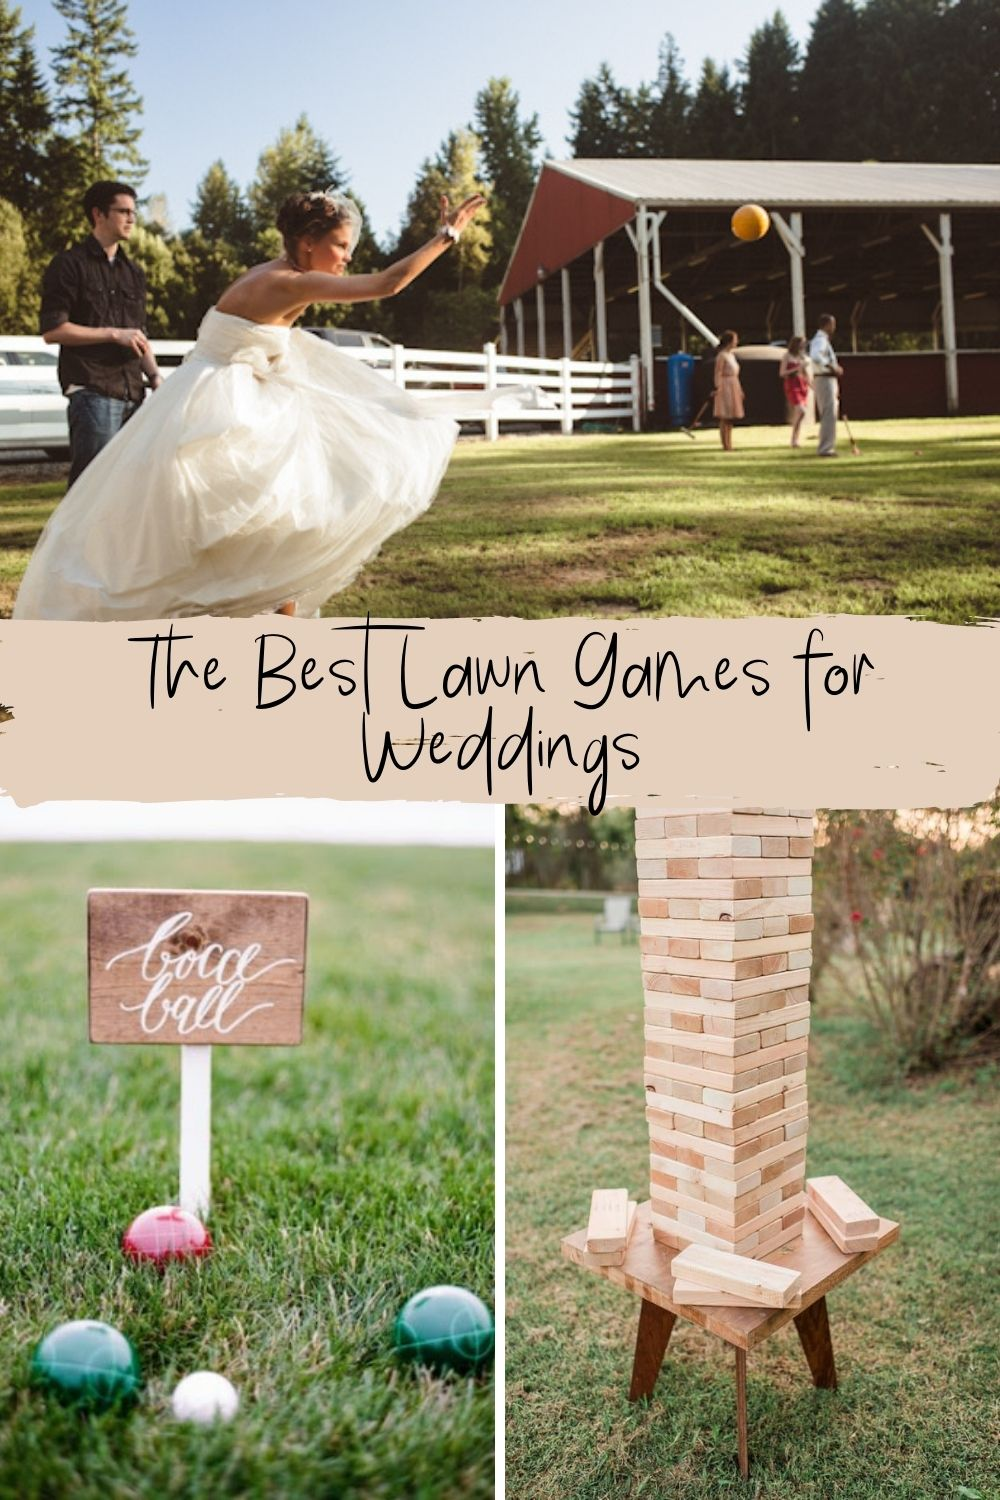 Best Lawn Games For Weddings